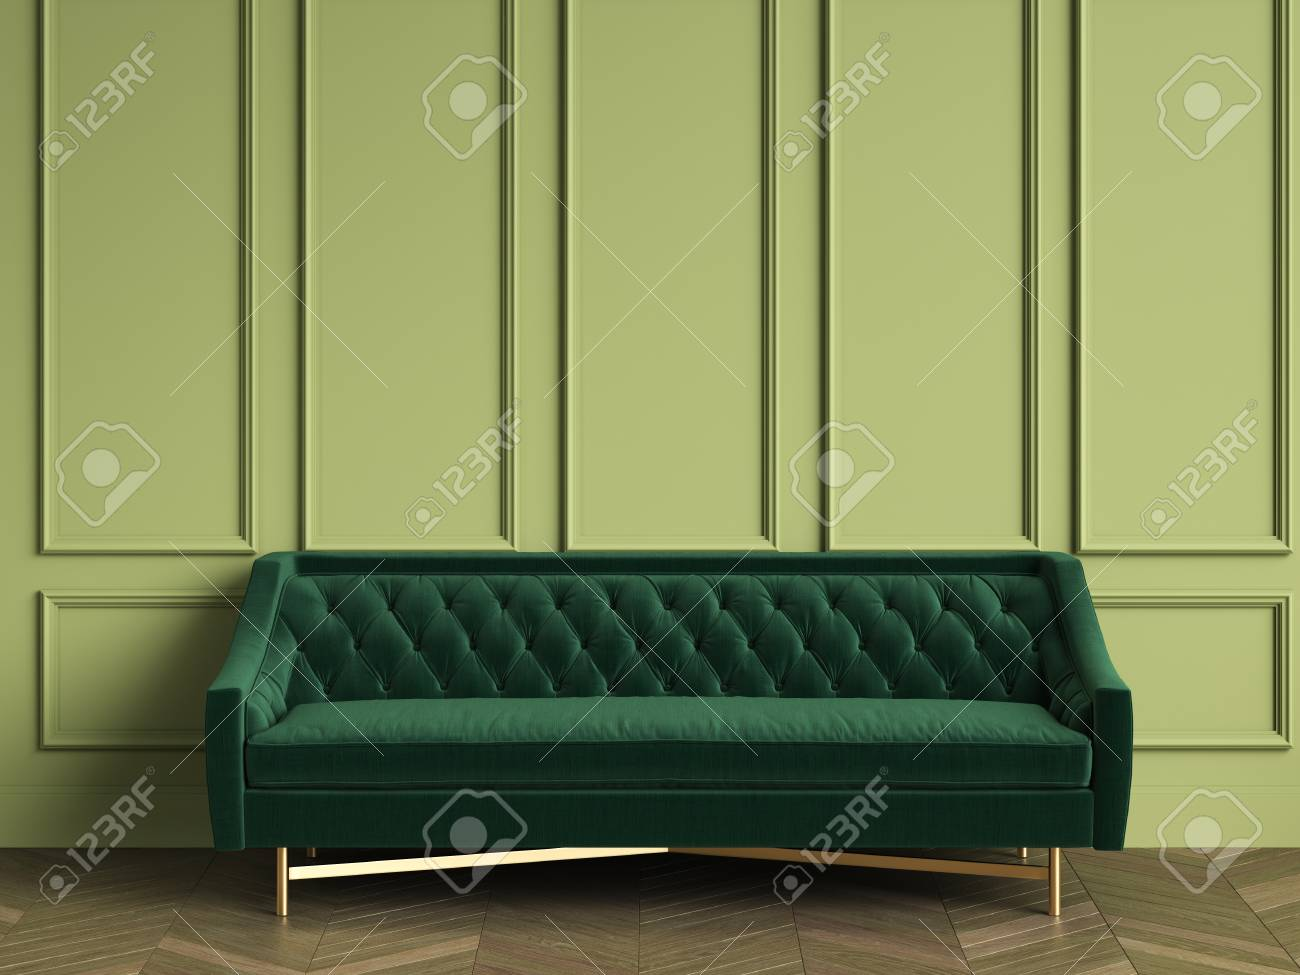 Illustration - Tufted dark green sofa in classic interior with copy space. Green walls with mouldings. Floor parquet herringbone.